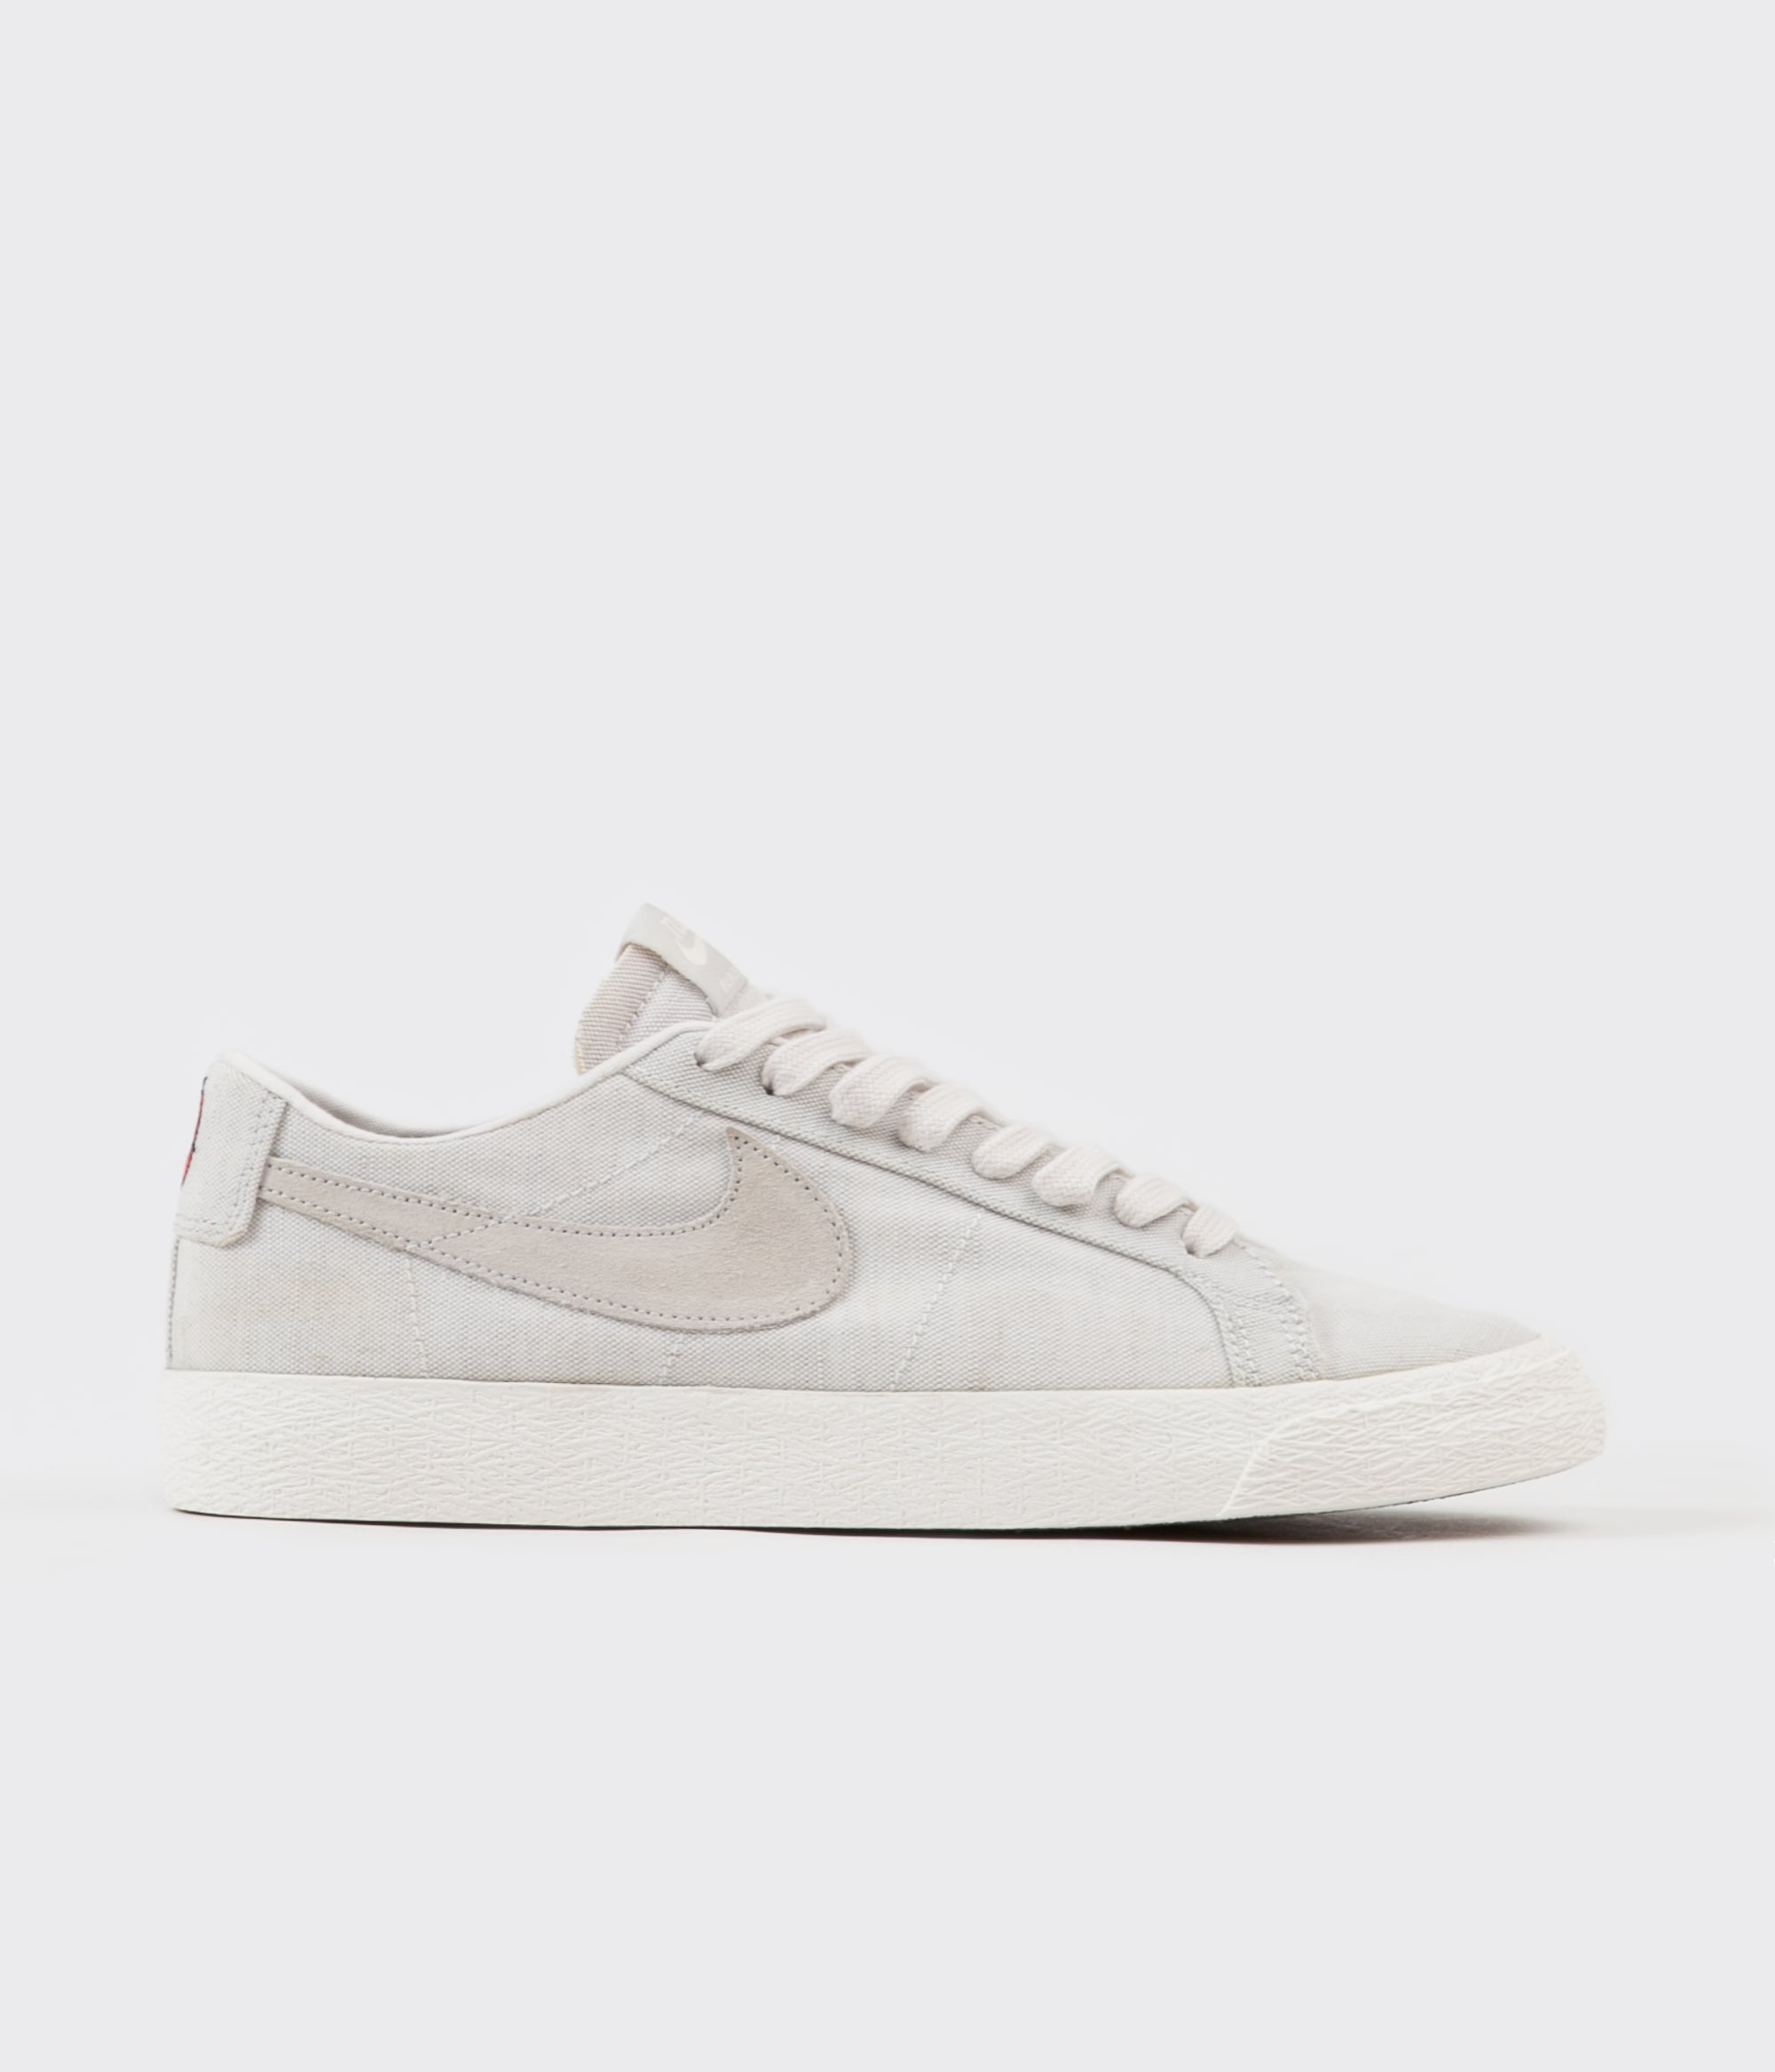 c20e55f9ee990 ... sale nike sb blazer low canvas deconstructed shoes phantom light bone  habanero red aa446 c2e16 ...